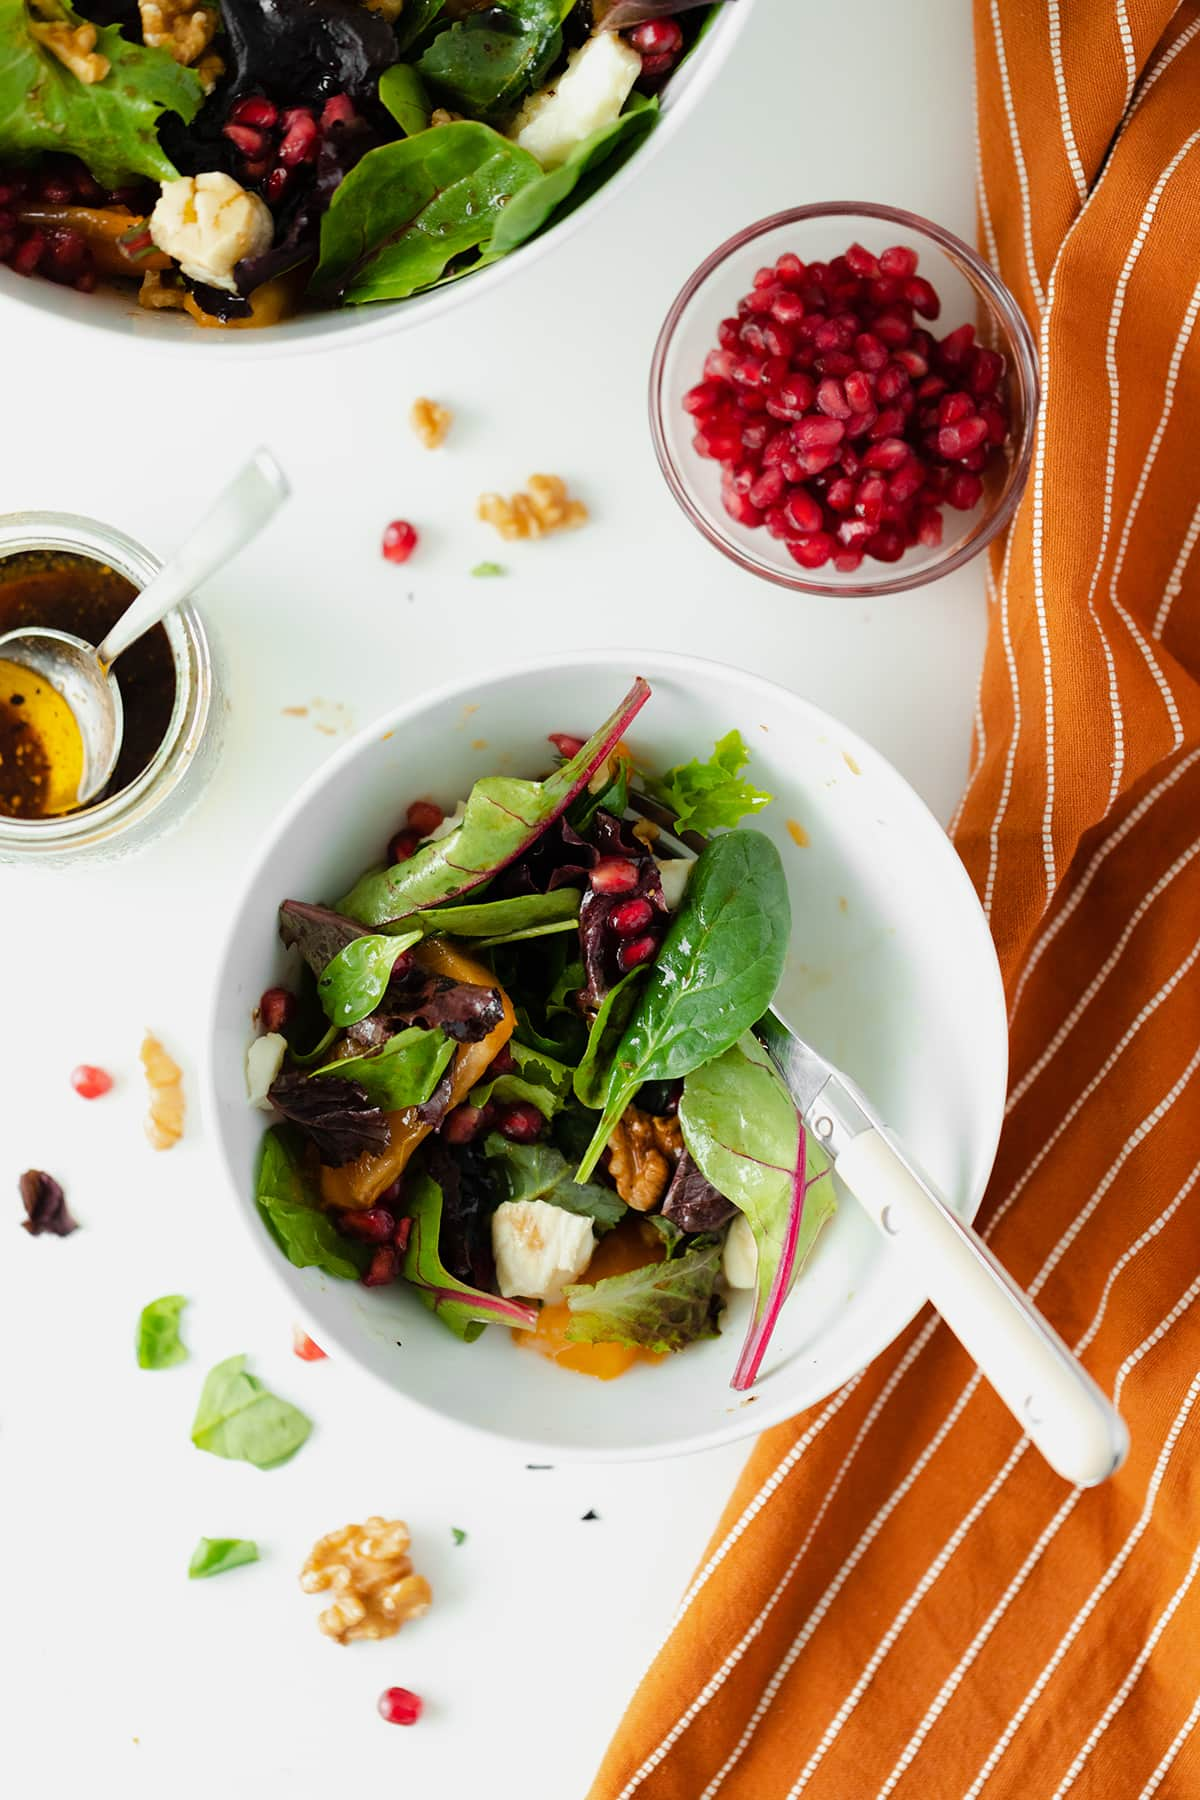 Persimmon Salad with Goat Brie and Pomegranate seeds in a white bowl on a white background with an orange napkin on the right side